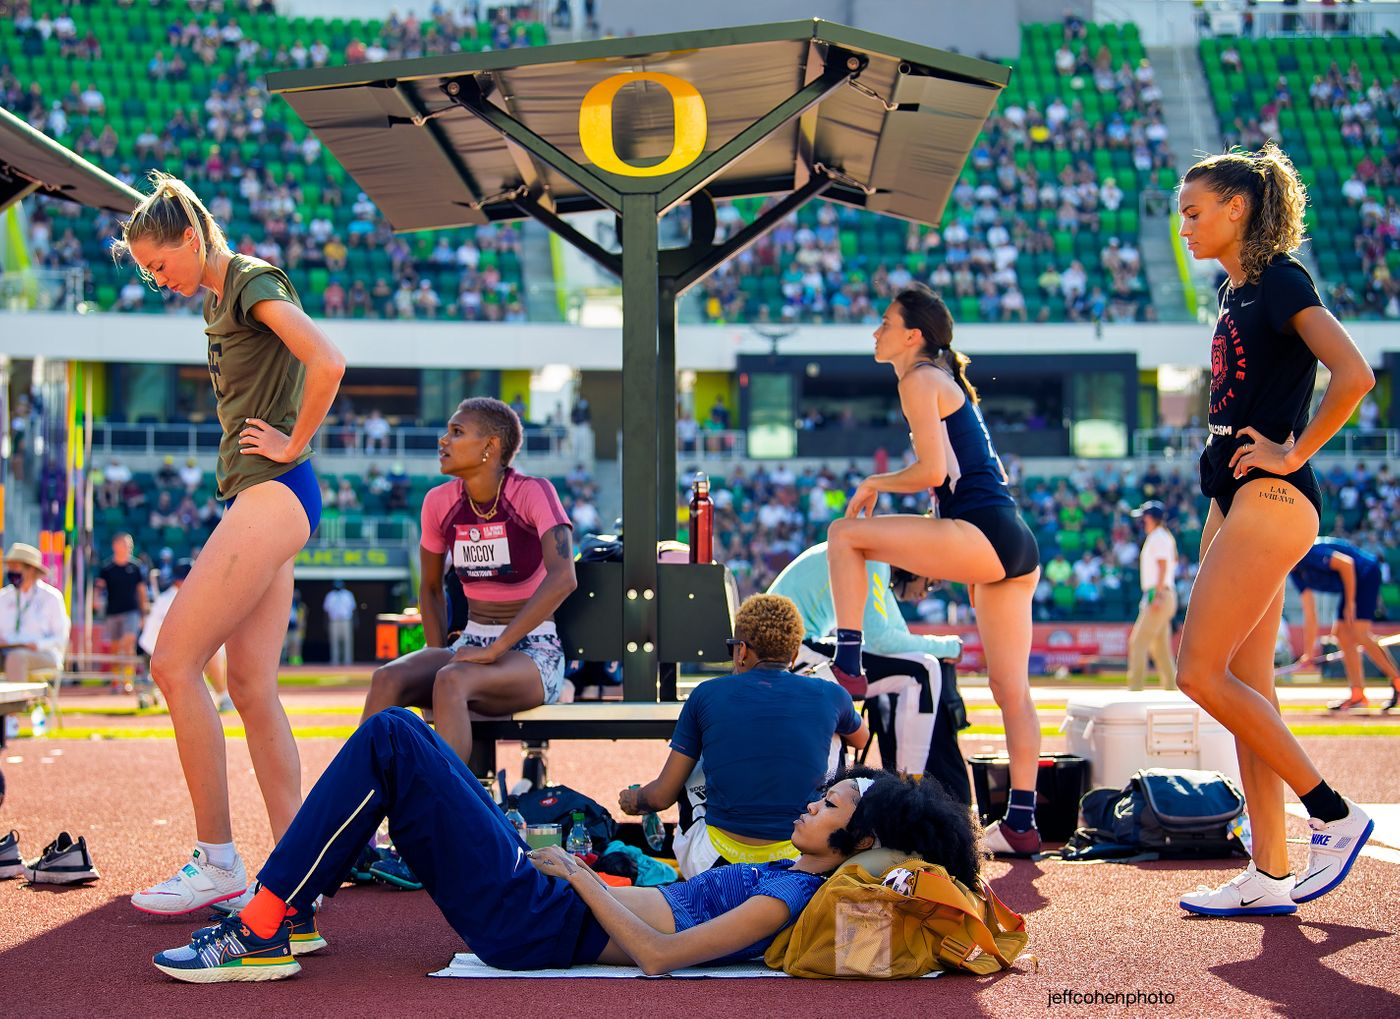 hjw-2021-US-Oly-Trials-day-3-30-jeff-cohen-photo--web.jpg